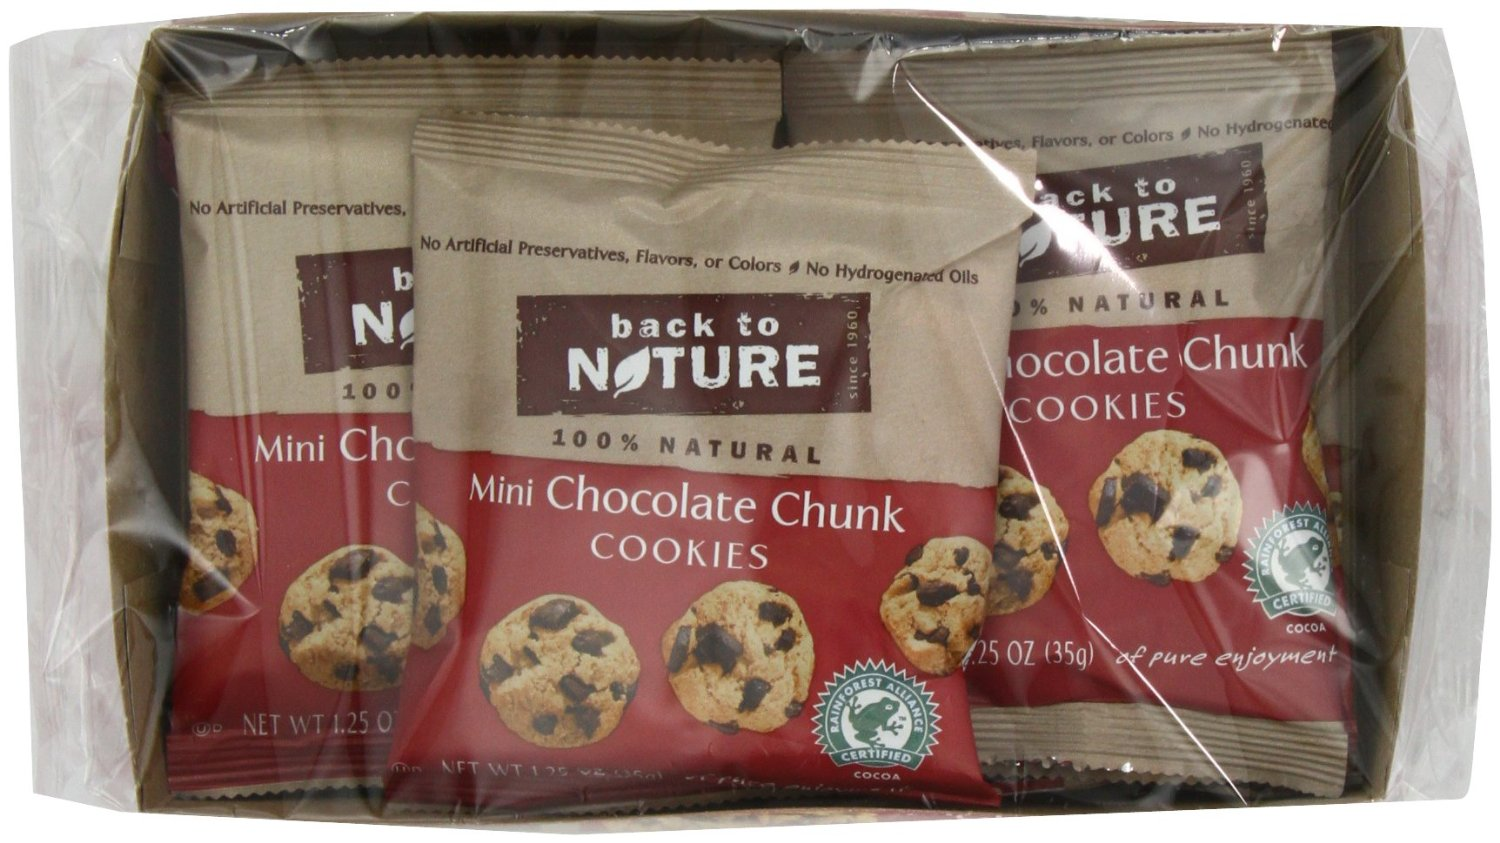 Back to Nature Mini Chocolate Chunk Cookies | Citrus Lane May Box: Look at the Loot